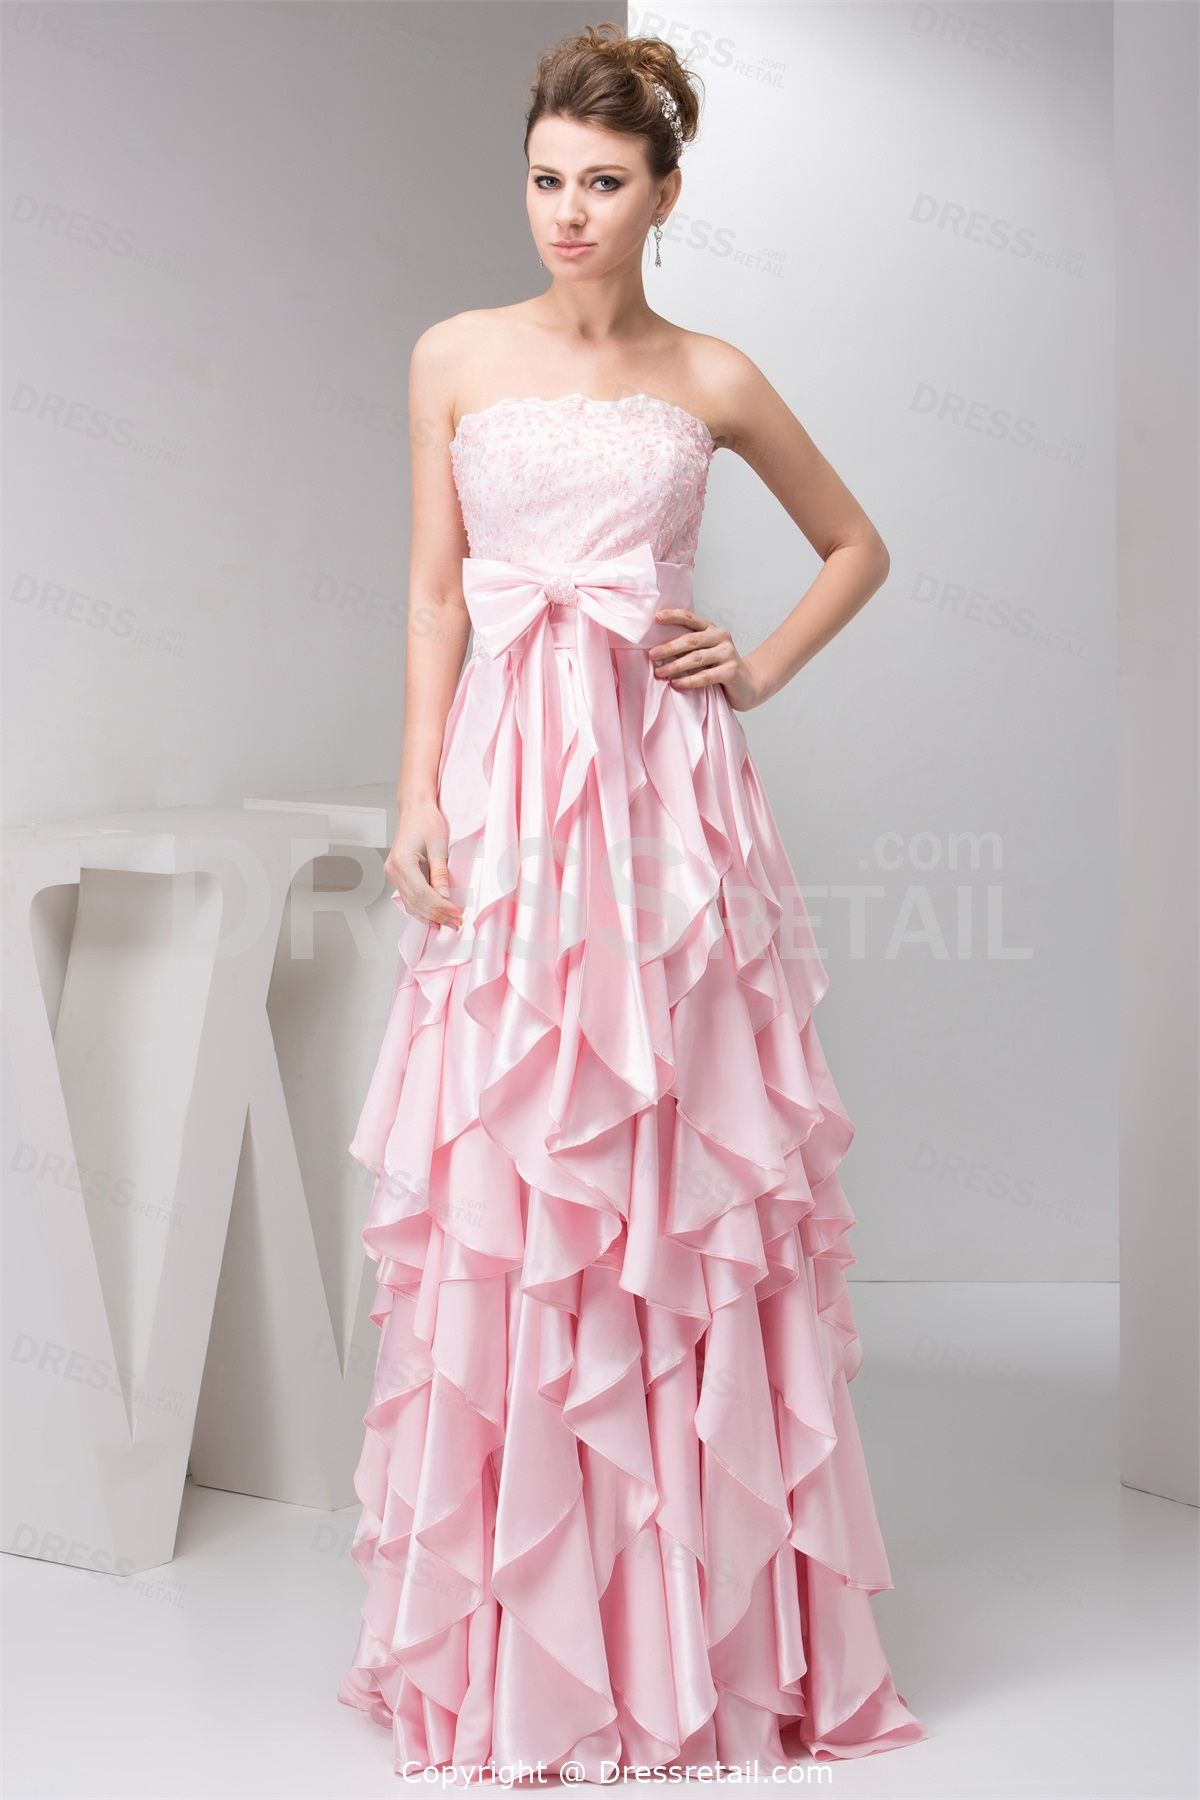 Formal dresses for teens pink | ... Special Occasion Dresses Light ...